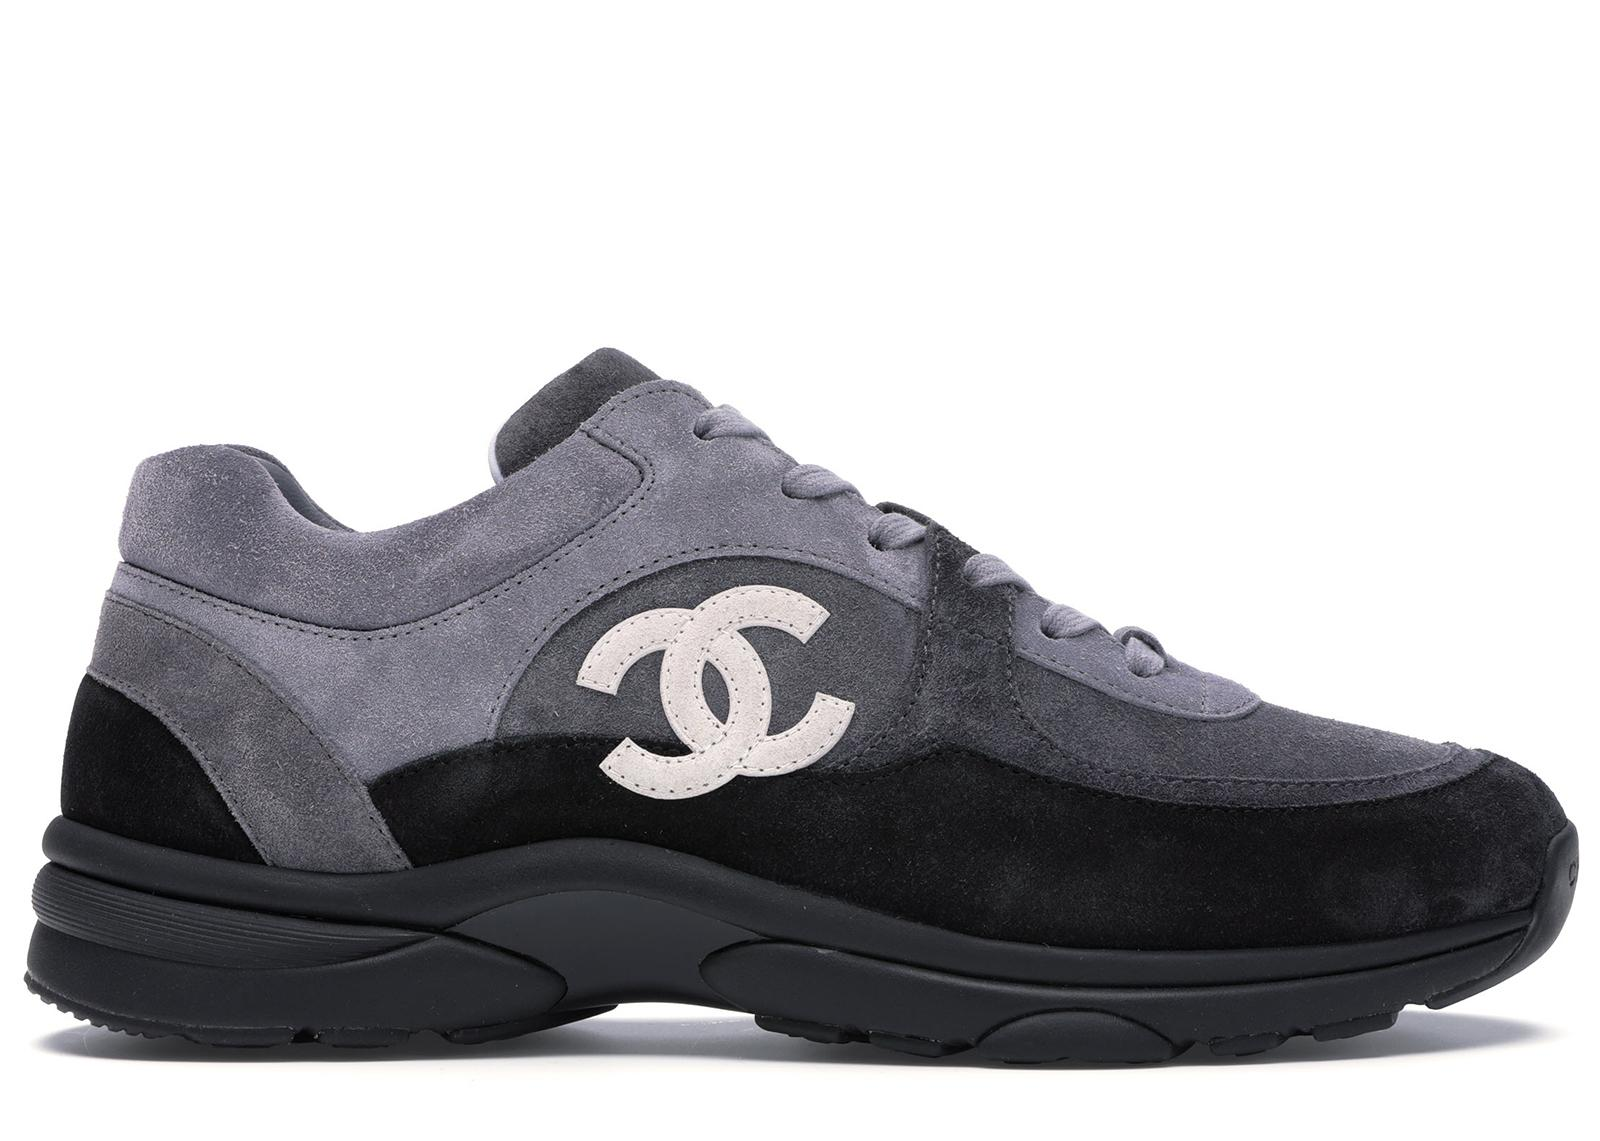 Chanel Low Top Trainer Cc Grey in Grey